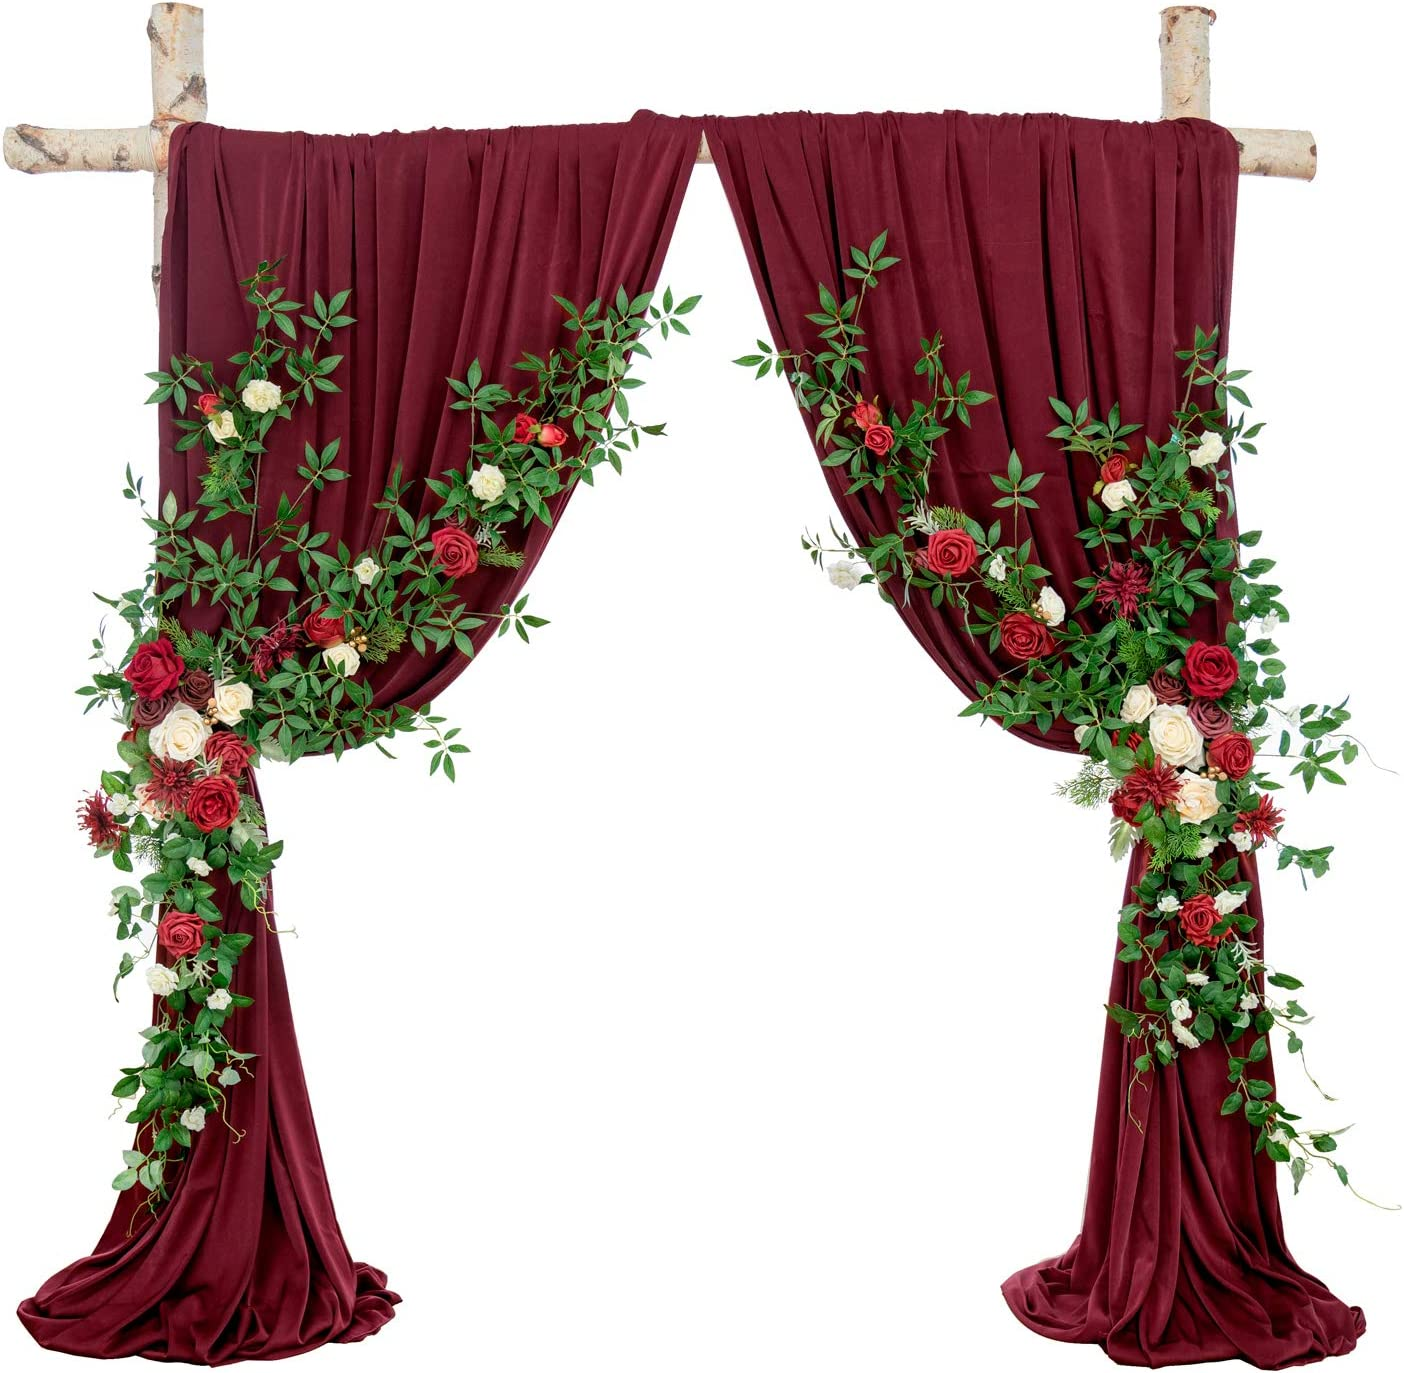 Ling's moment Artificial Arch Flower Swag with Fabric Drape for Red and White Winter Wedding Aobor Floral Decoration